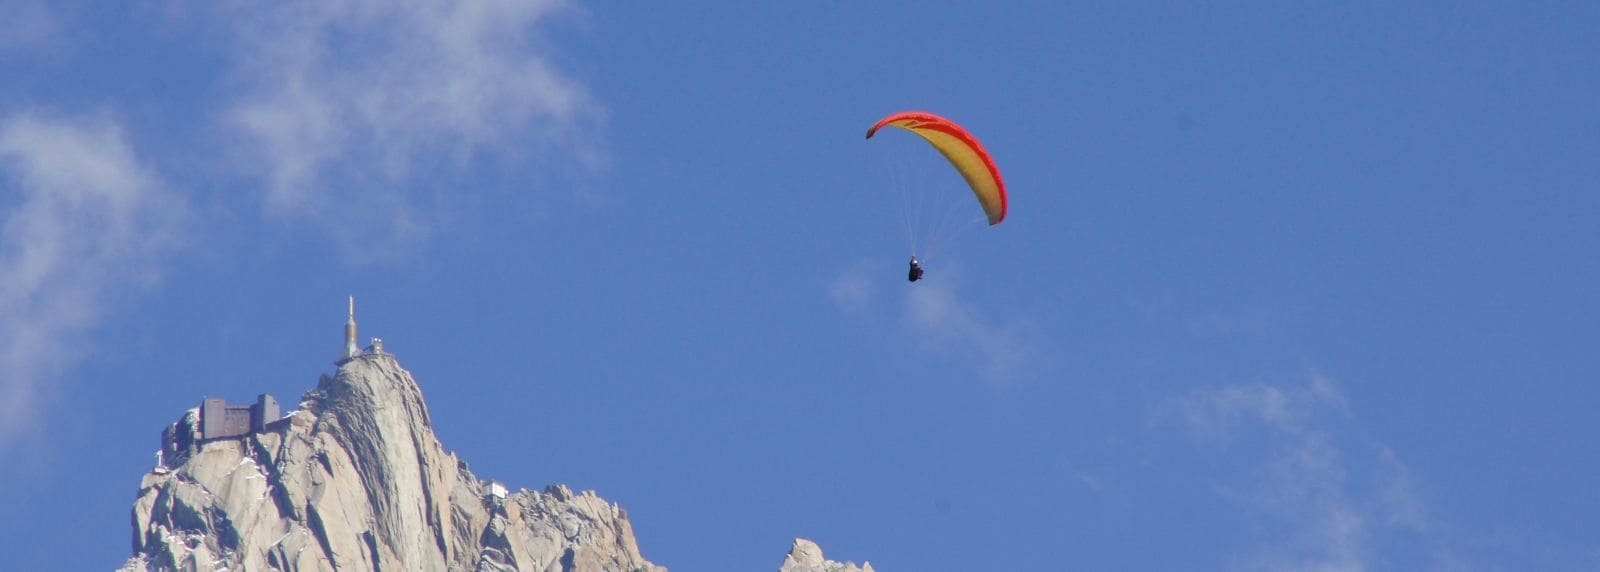 France Paragliding - SkySchool